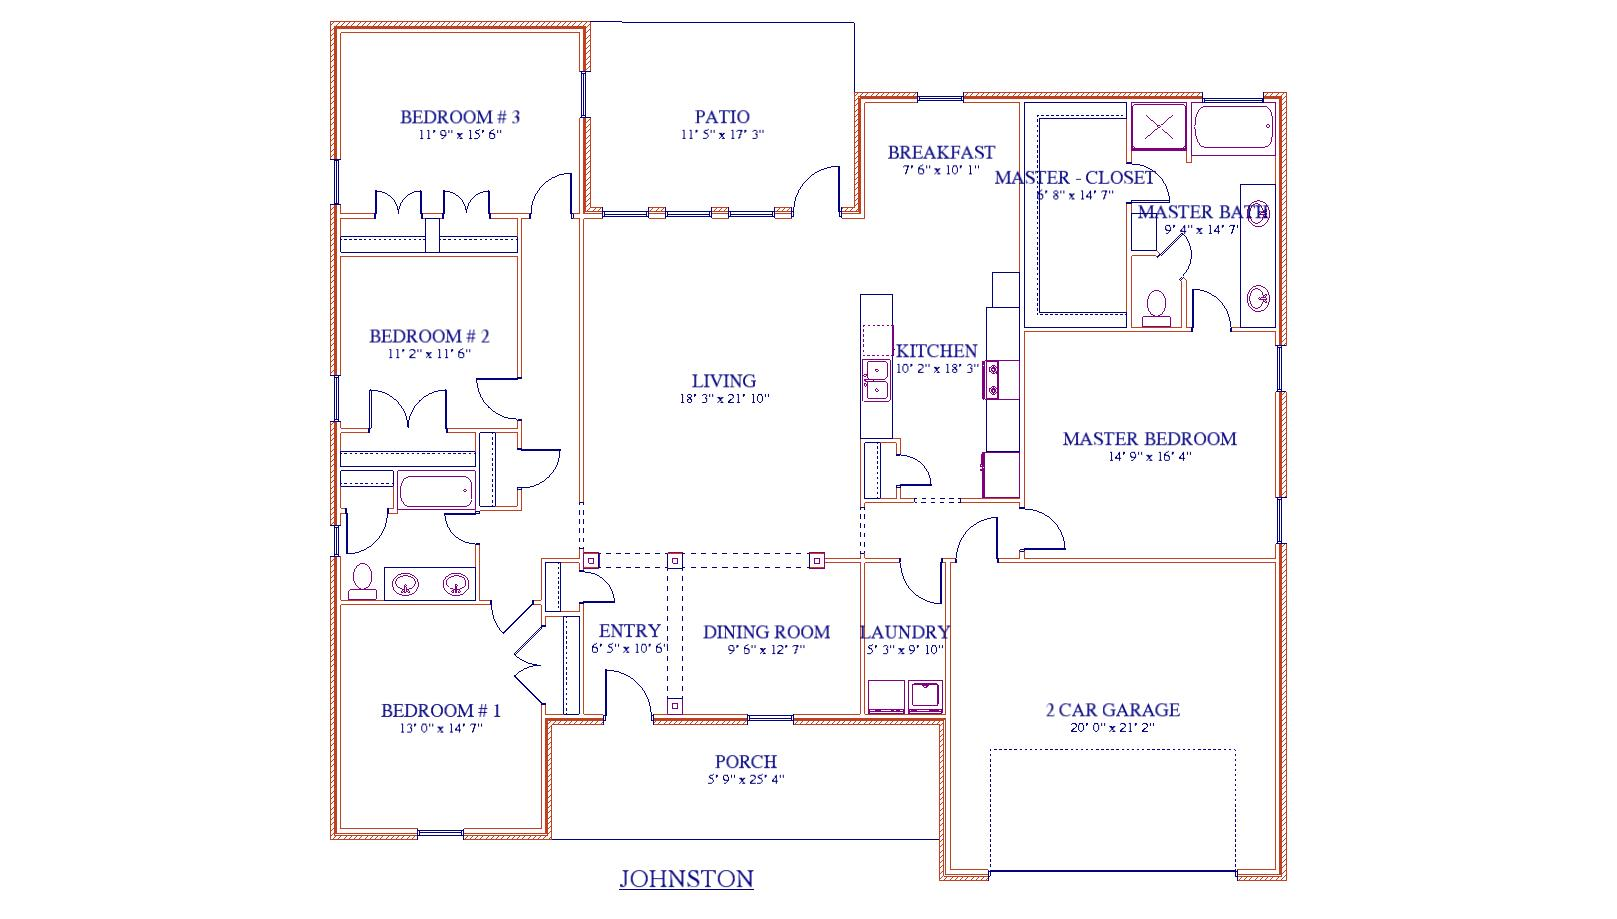 Johnston Floor Plan - Abshire Custom Homes in Southeast Texas